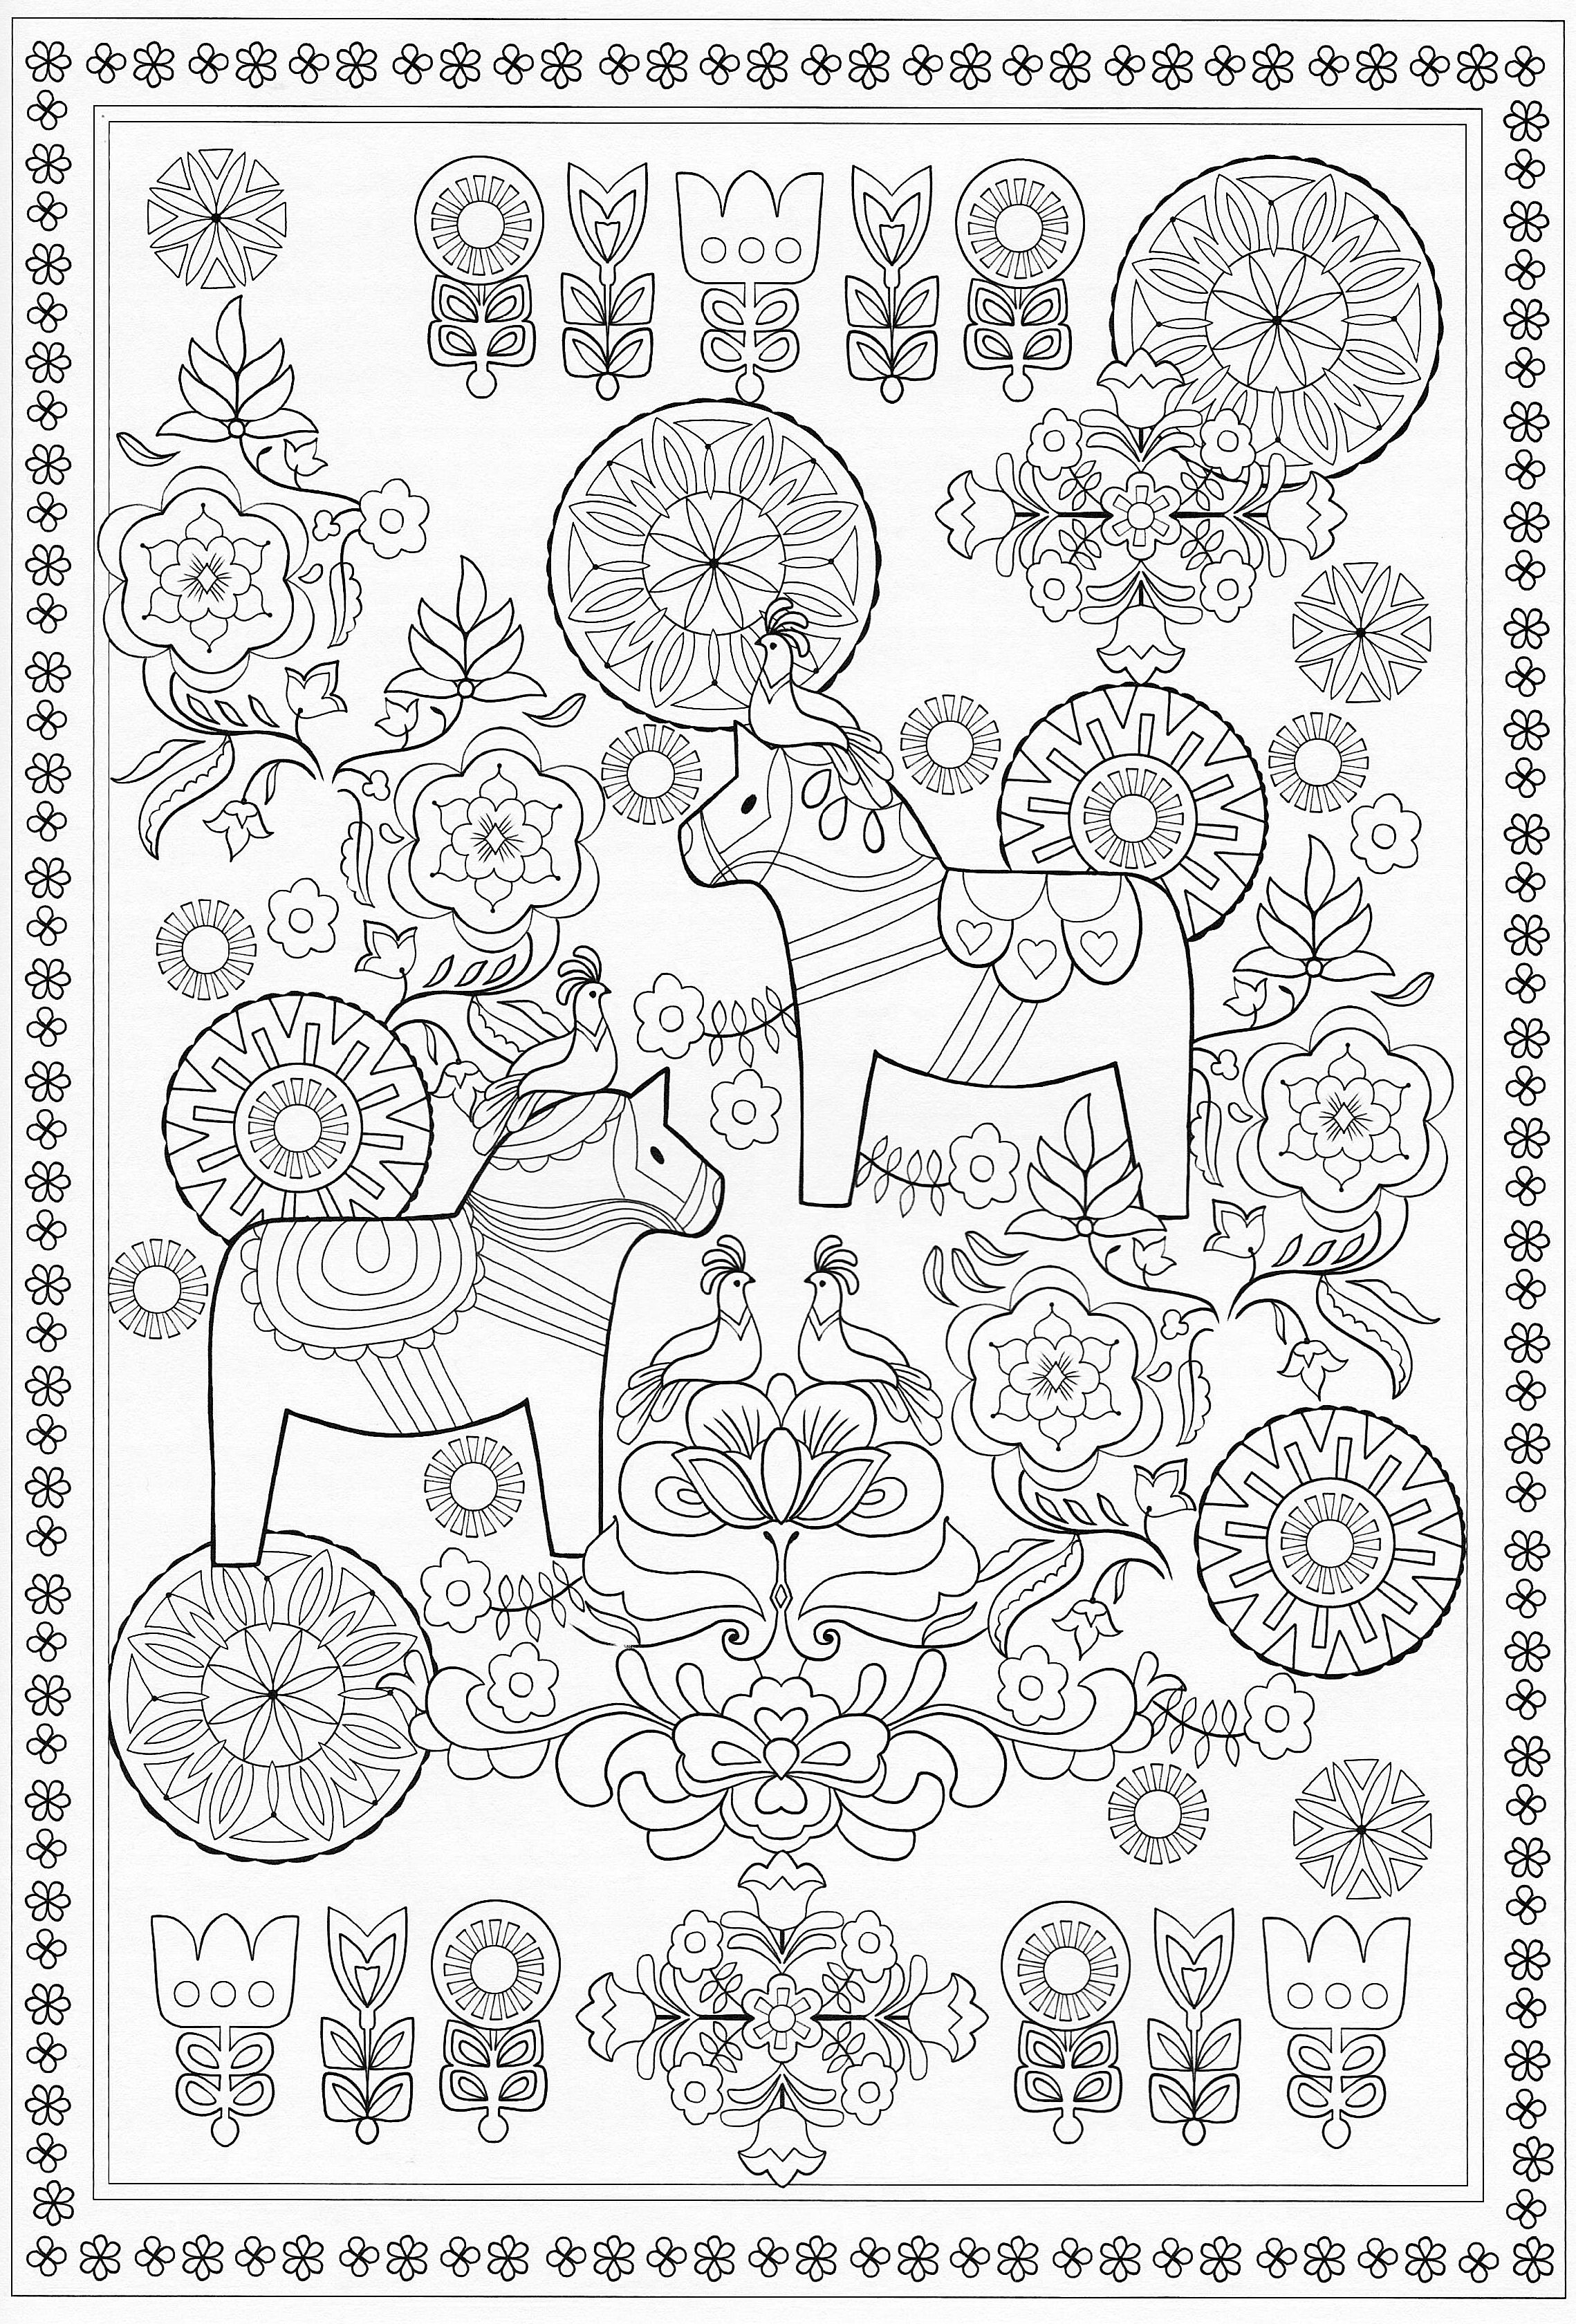 Scandinavian Coloring Book Pg 58 Coloring Pages Coloring Books